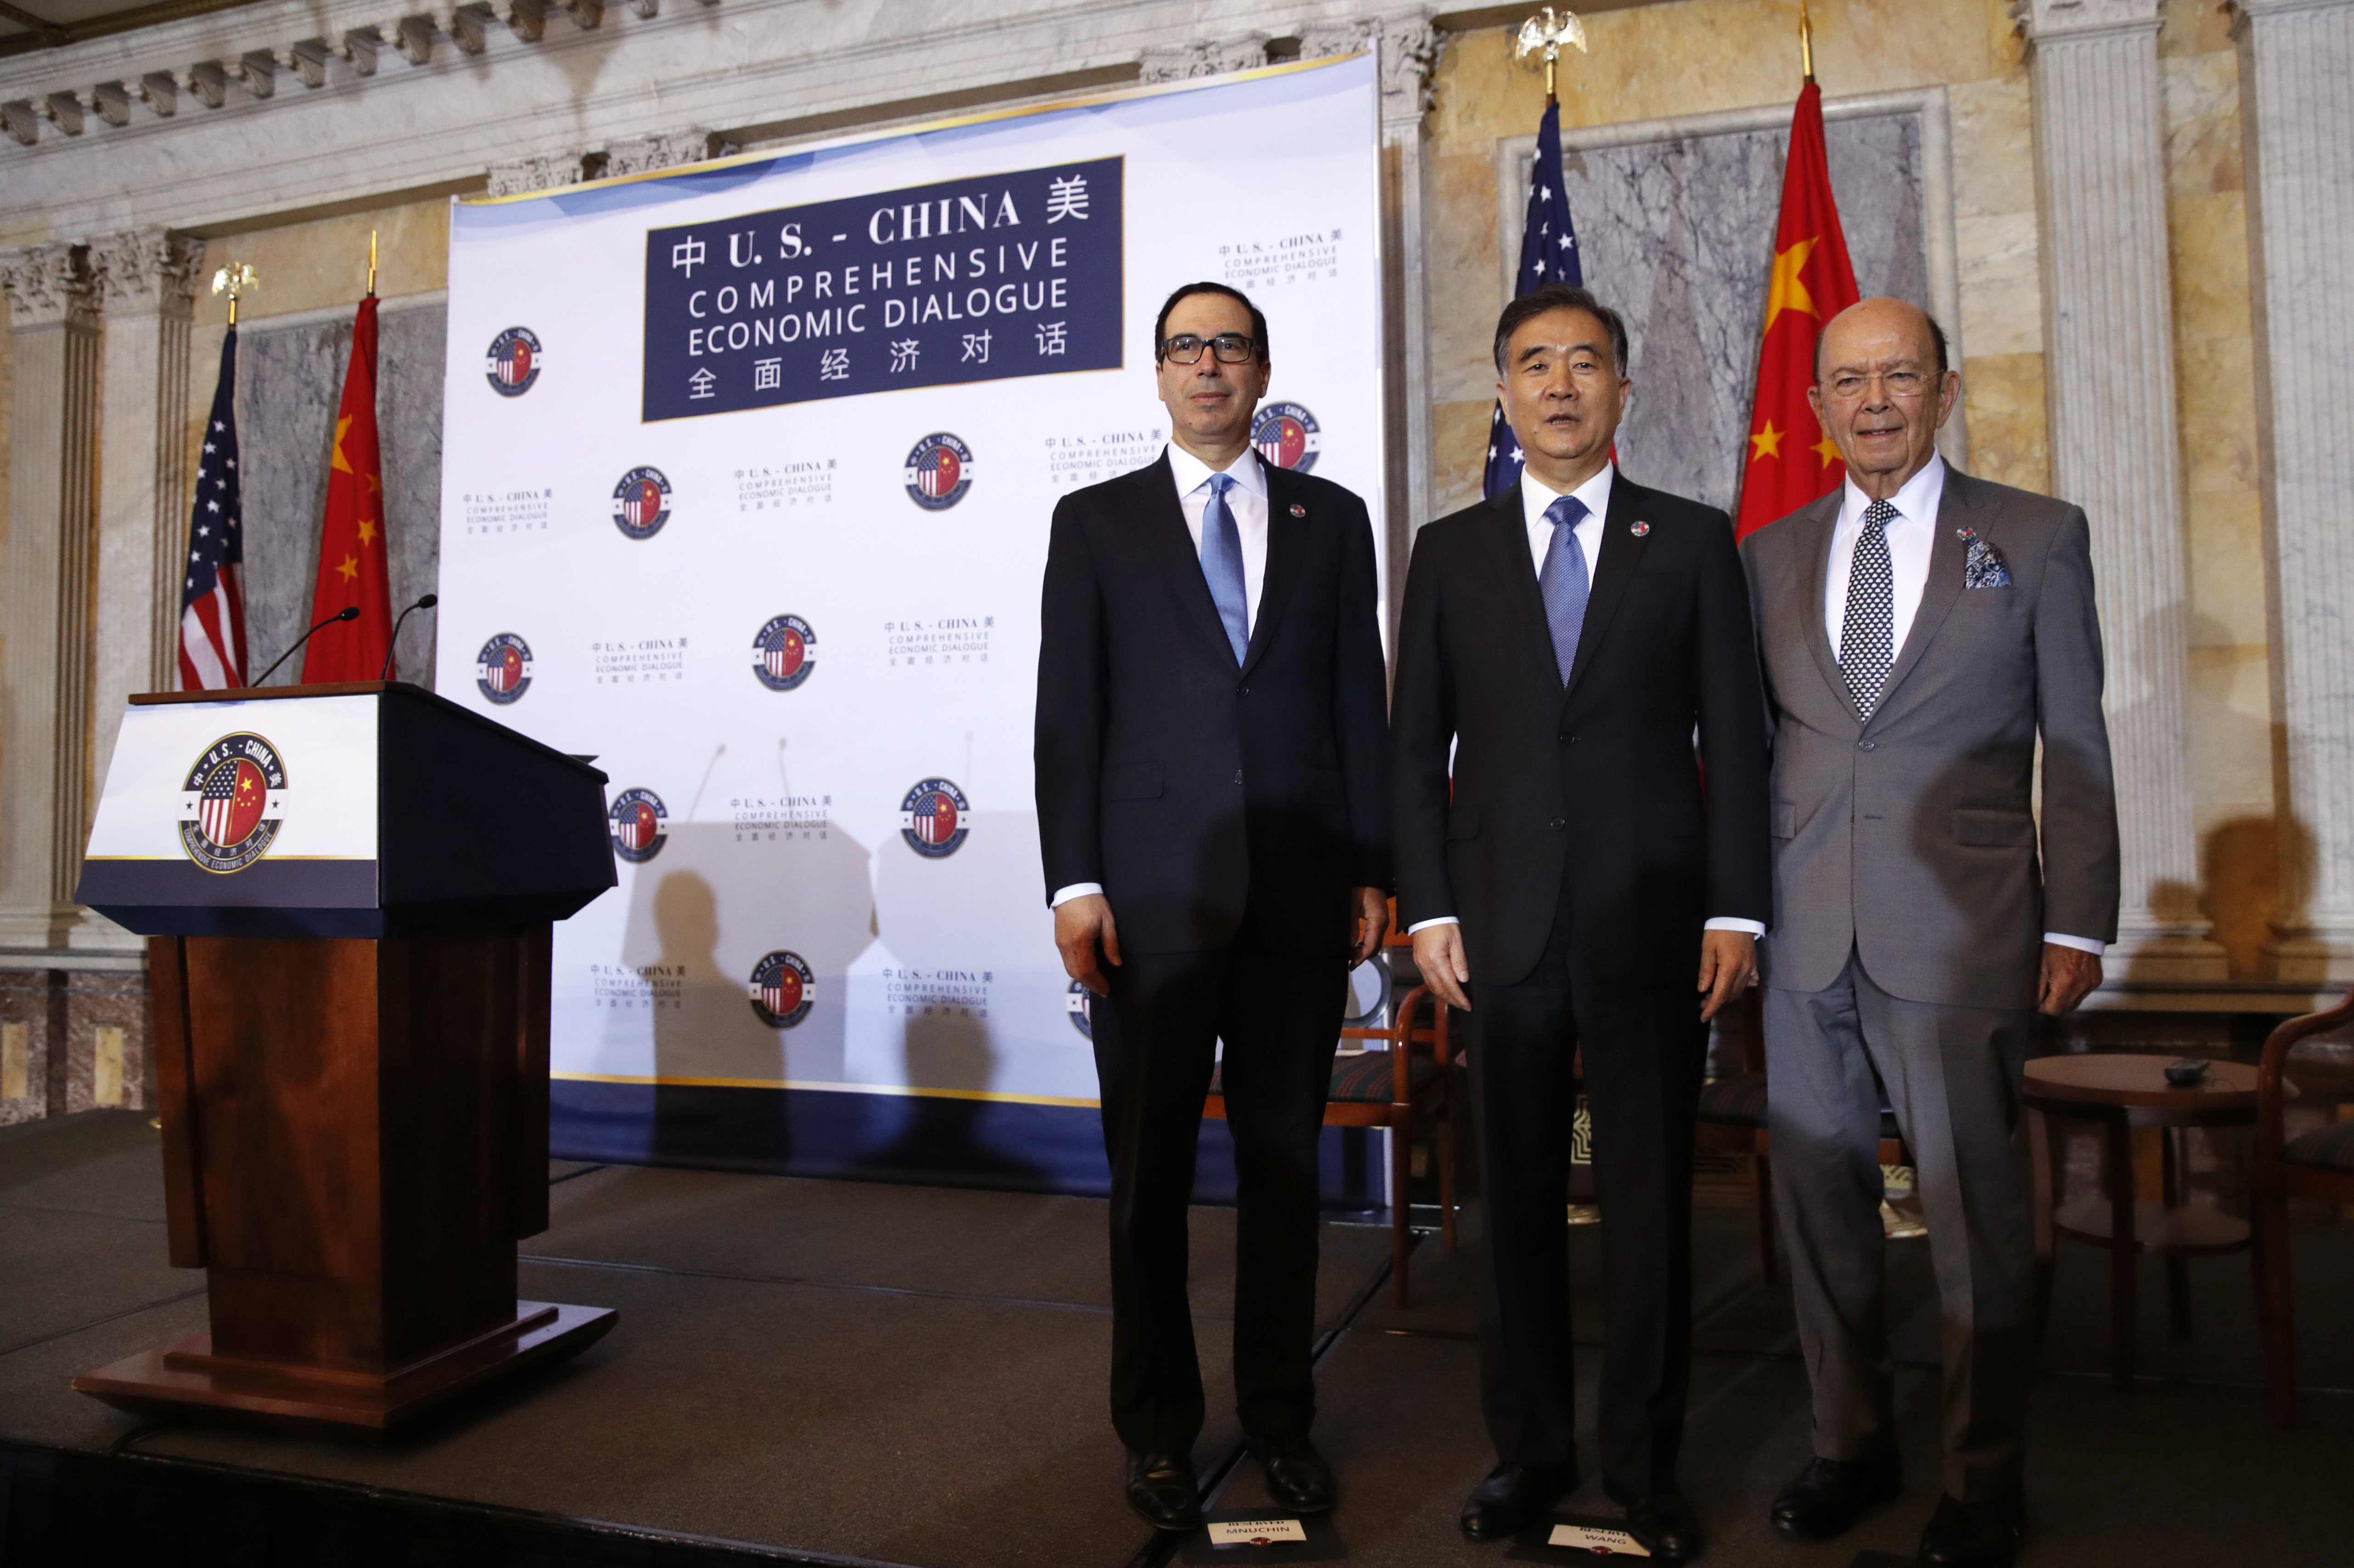 From left, Treasury Secretary Steve Mnuchin, Chinese Vice Premier Wang Yang, and Commerce Secretary Wilbur Ross pose for a group photograph before speaking at the opening of the U.S.-China Comprehensive Economic Dialogue, Wednesday, July 19, 2017, at the Treasury Department in Washington.